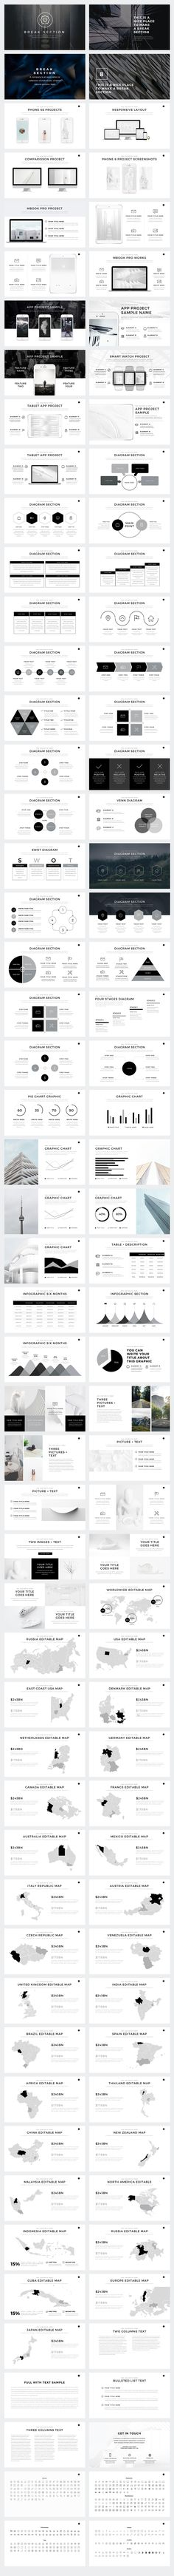 """Now you can download """"Verzus"""" Minimal PowerPoint Template Builder here: http://bit.ly/Verzus-PW"""